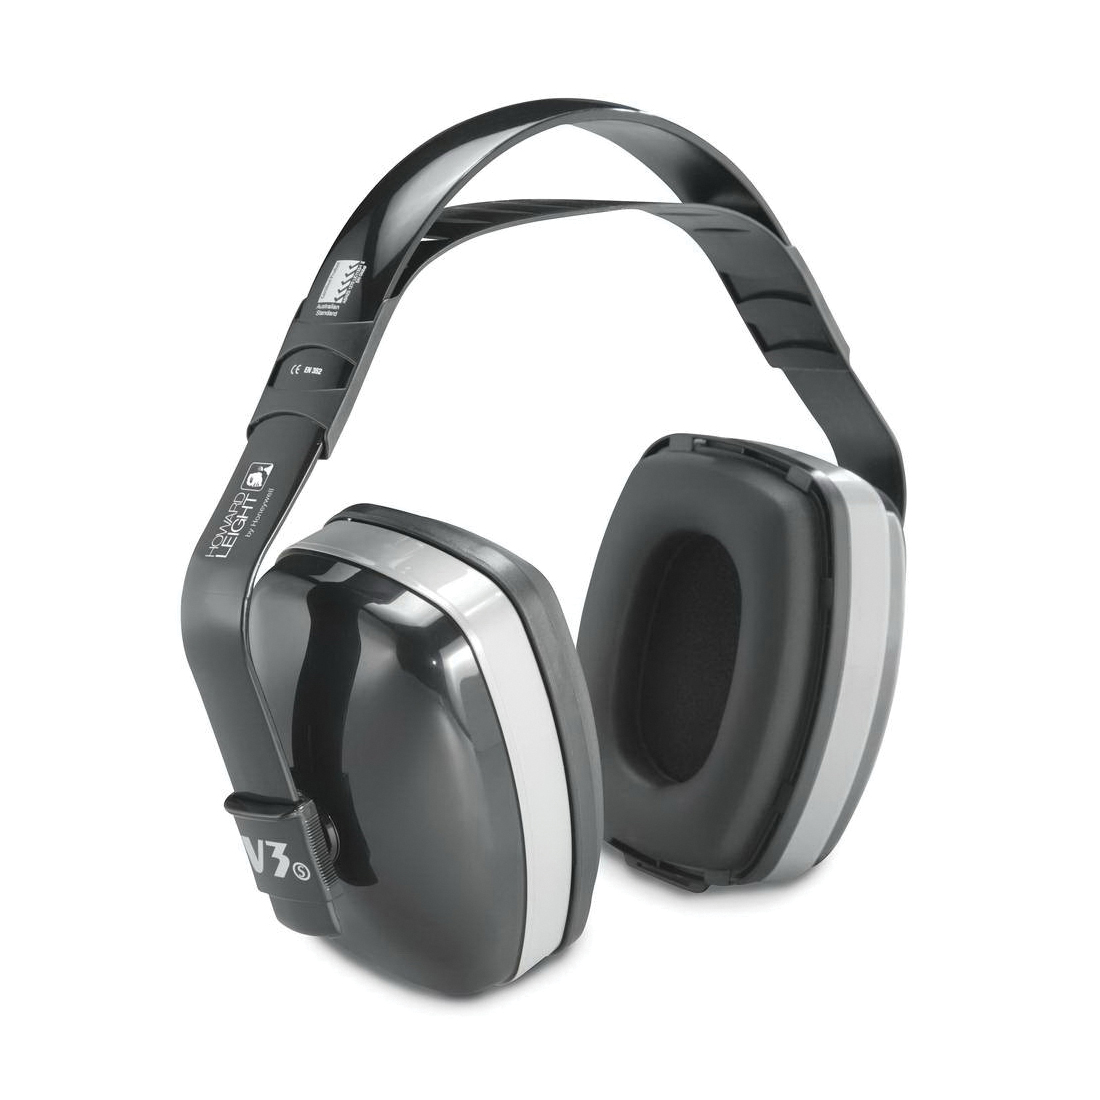 Howard Leight by Honeywell 1010926 Viking® V2 Earmuffs, 27 dB Noise Reduction, Black/Blue, Multi-Position Band Position, Specifications Met: ANSI S3.19-1974